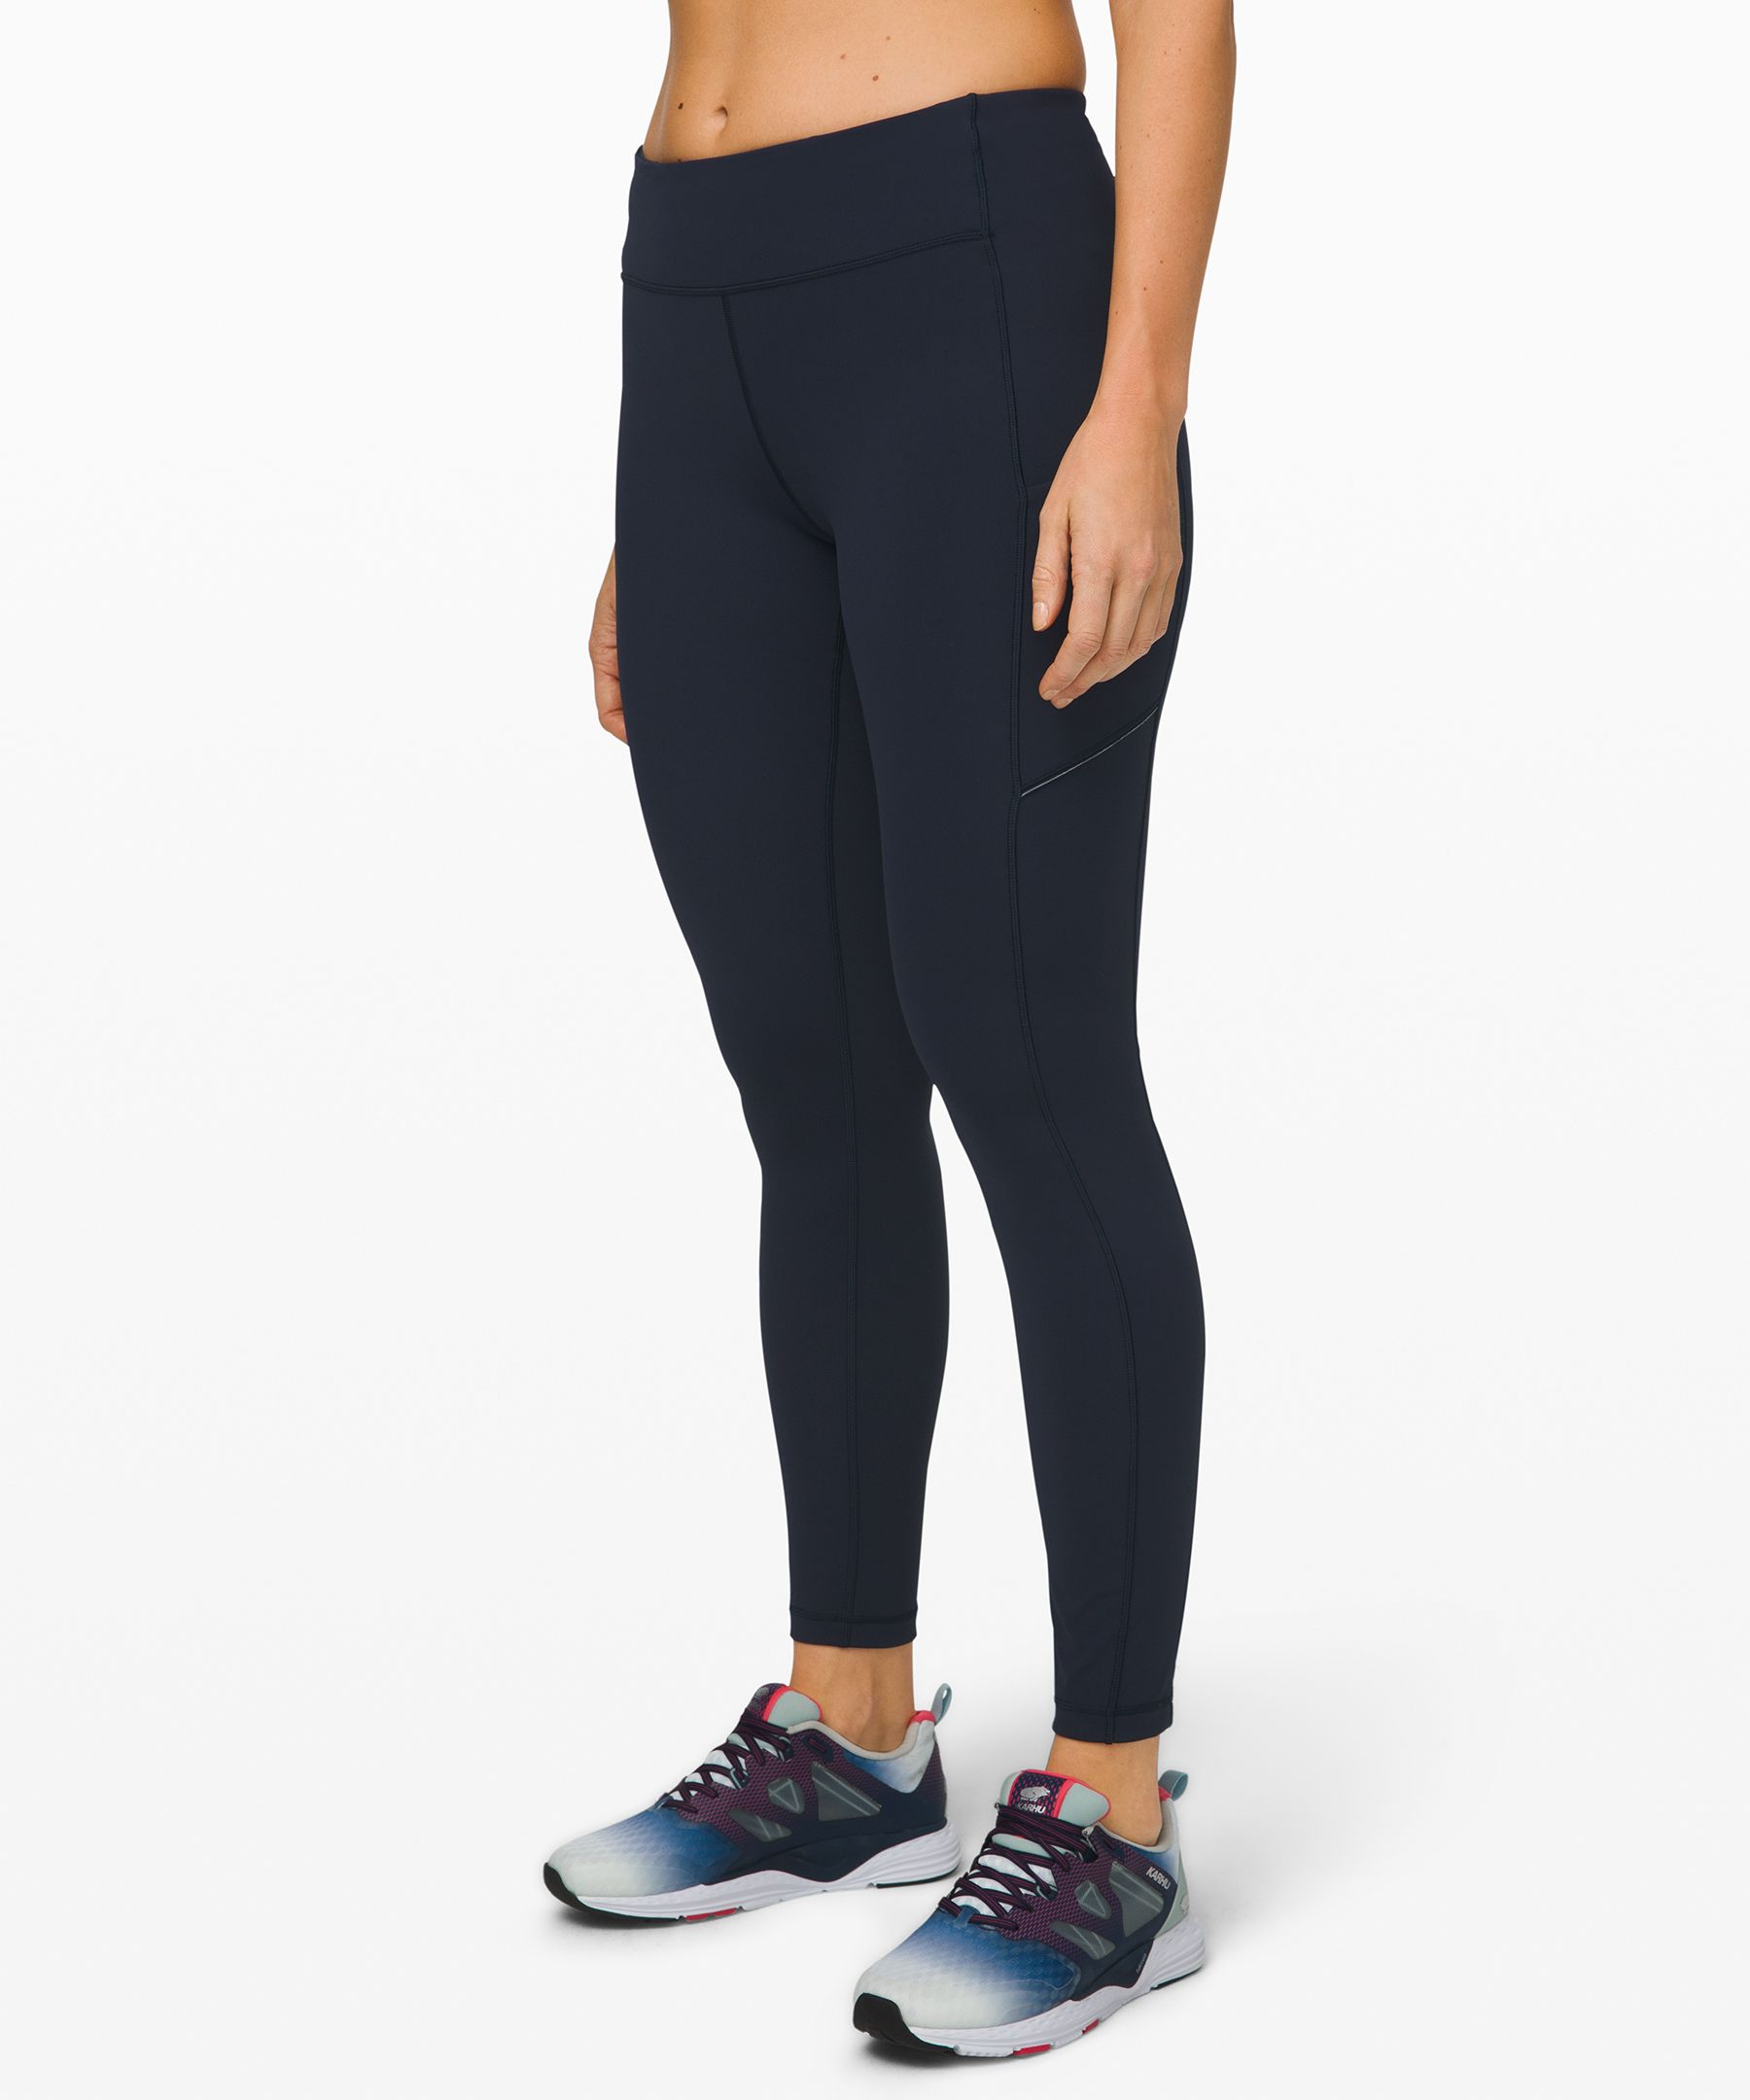 "Speed Up Tight 28"" Full On Luxtreme New Luxtreme™ by Lululemon"